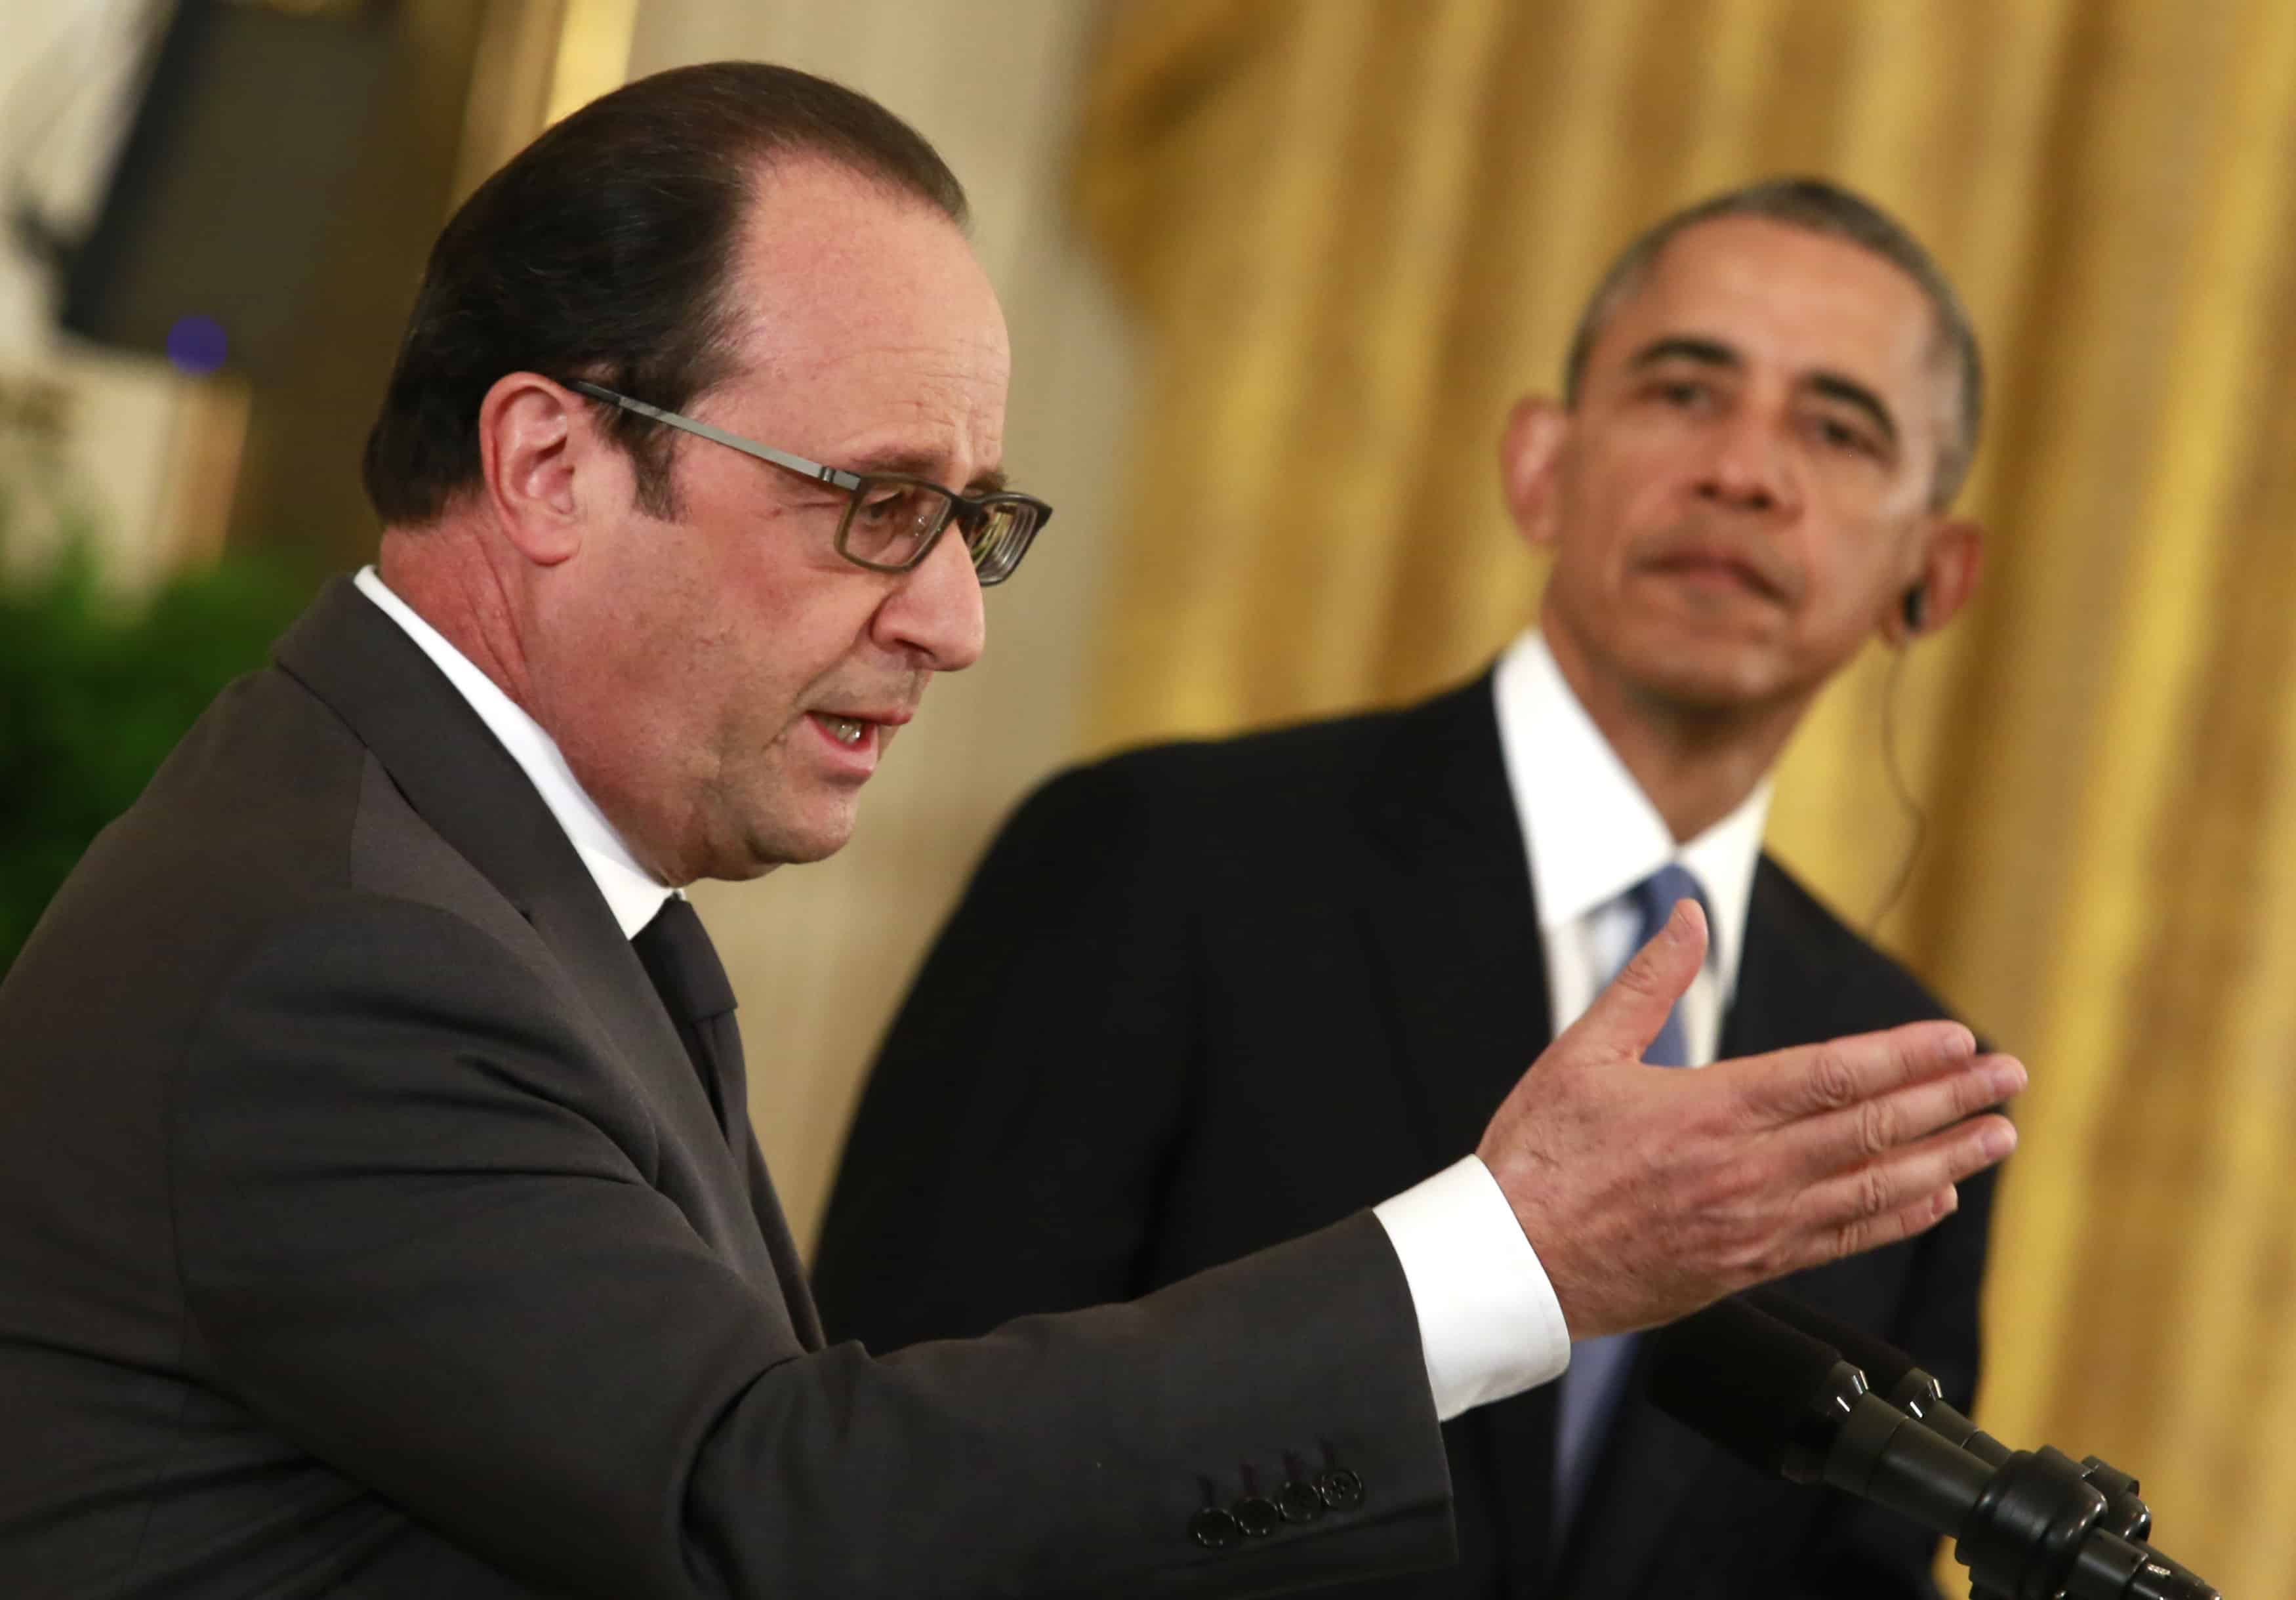 Obama and Hollande after Russian warplane shot down by Turkey